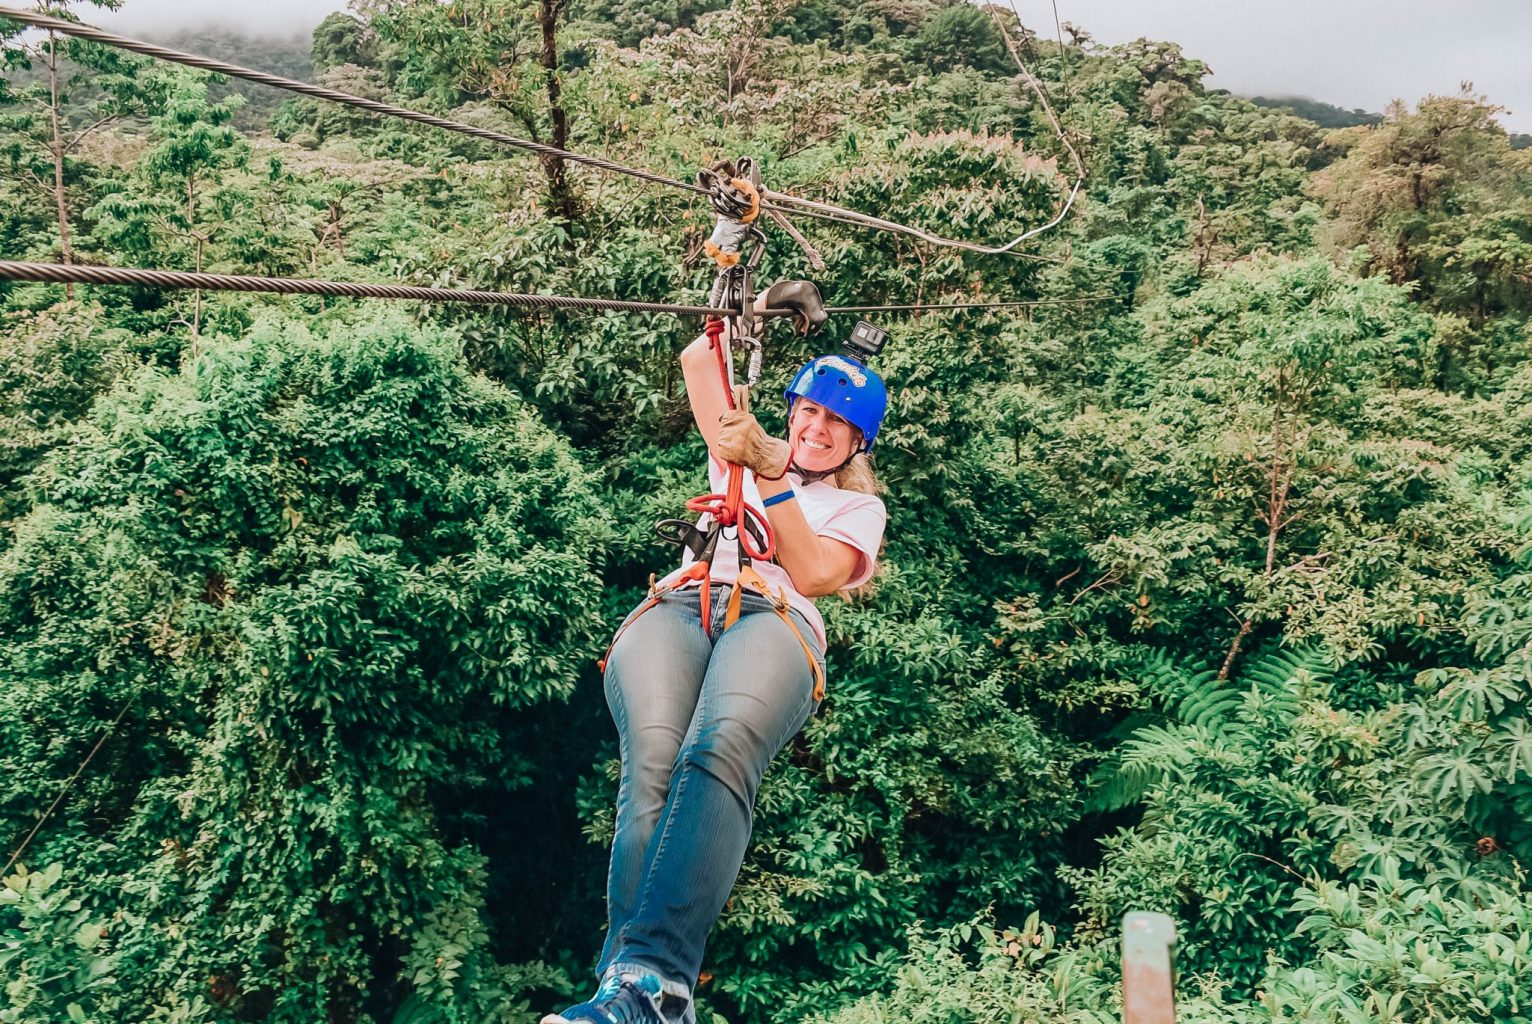 Popular things to do in Costa Rica with kids include ziplining through the rainforest